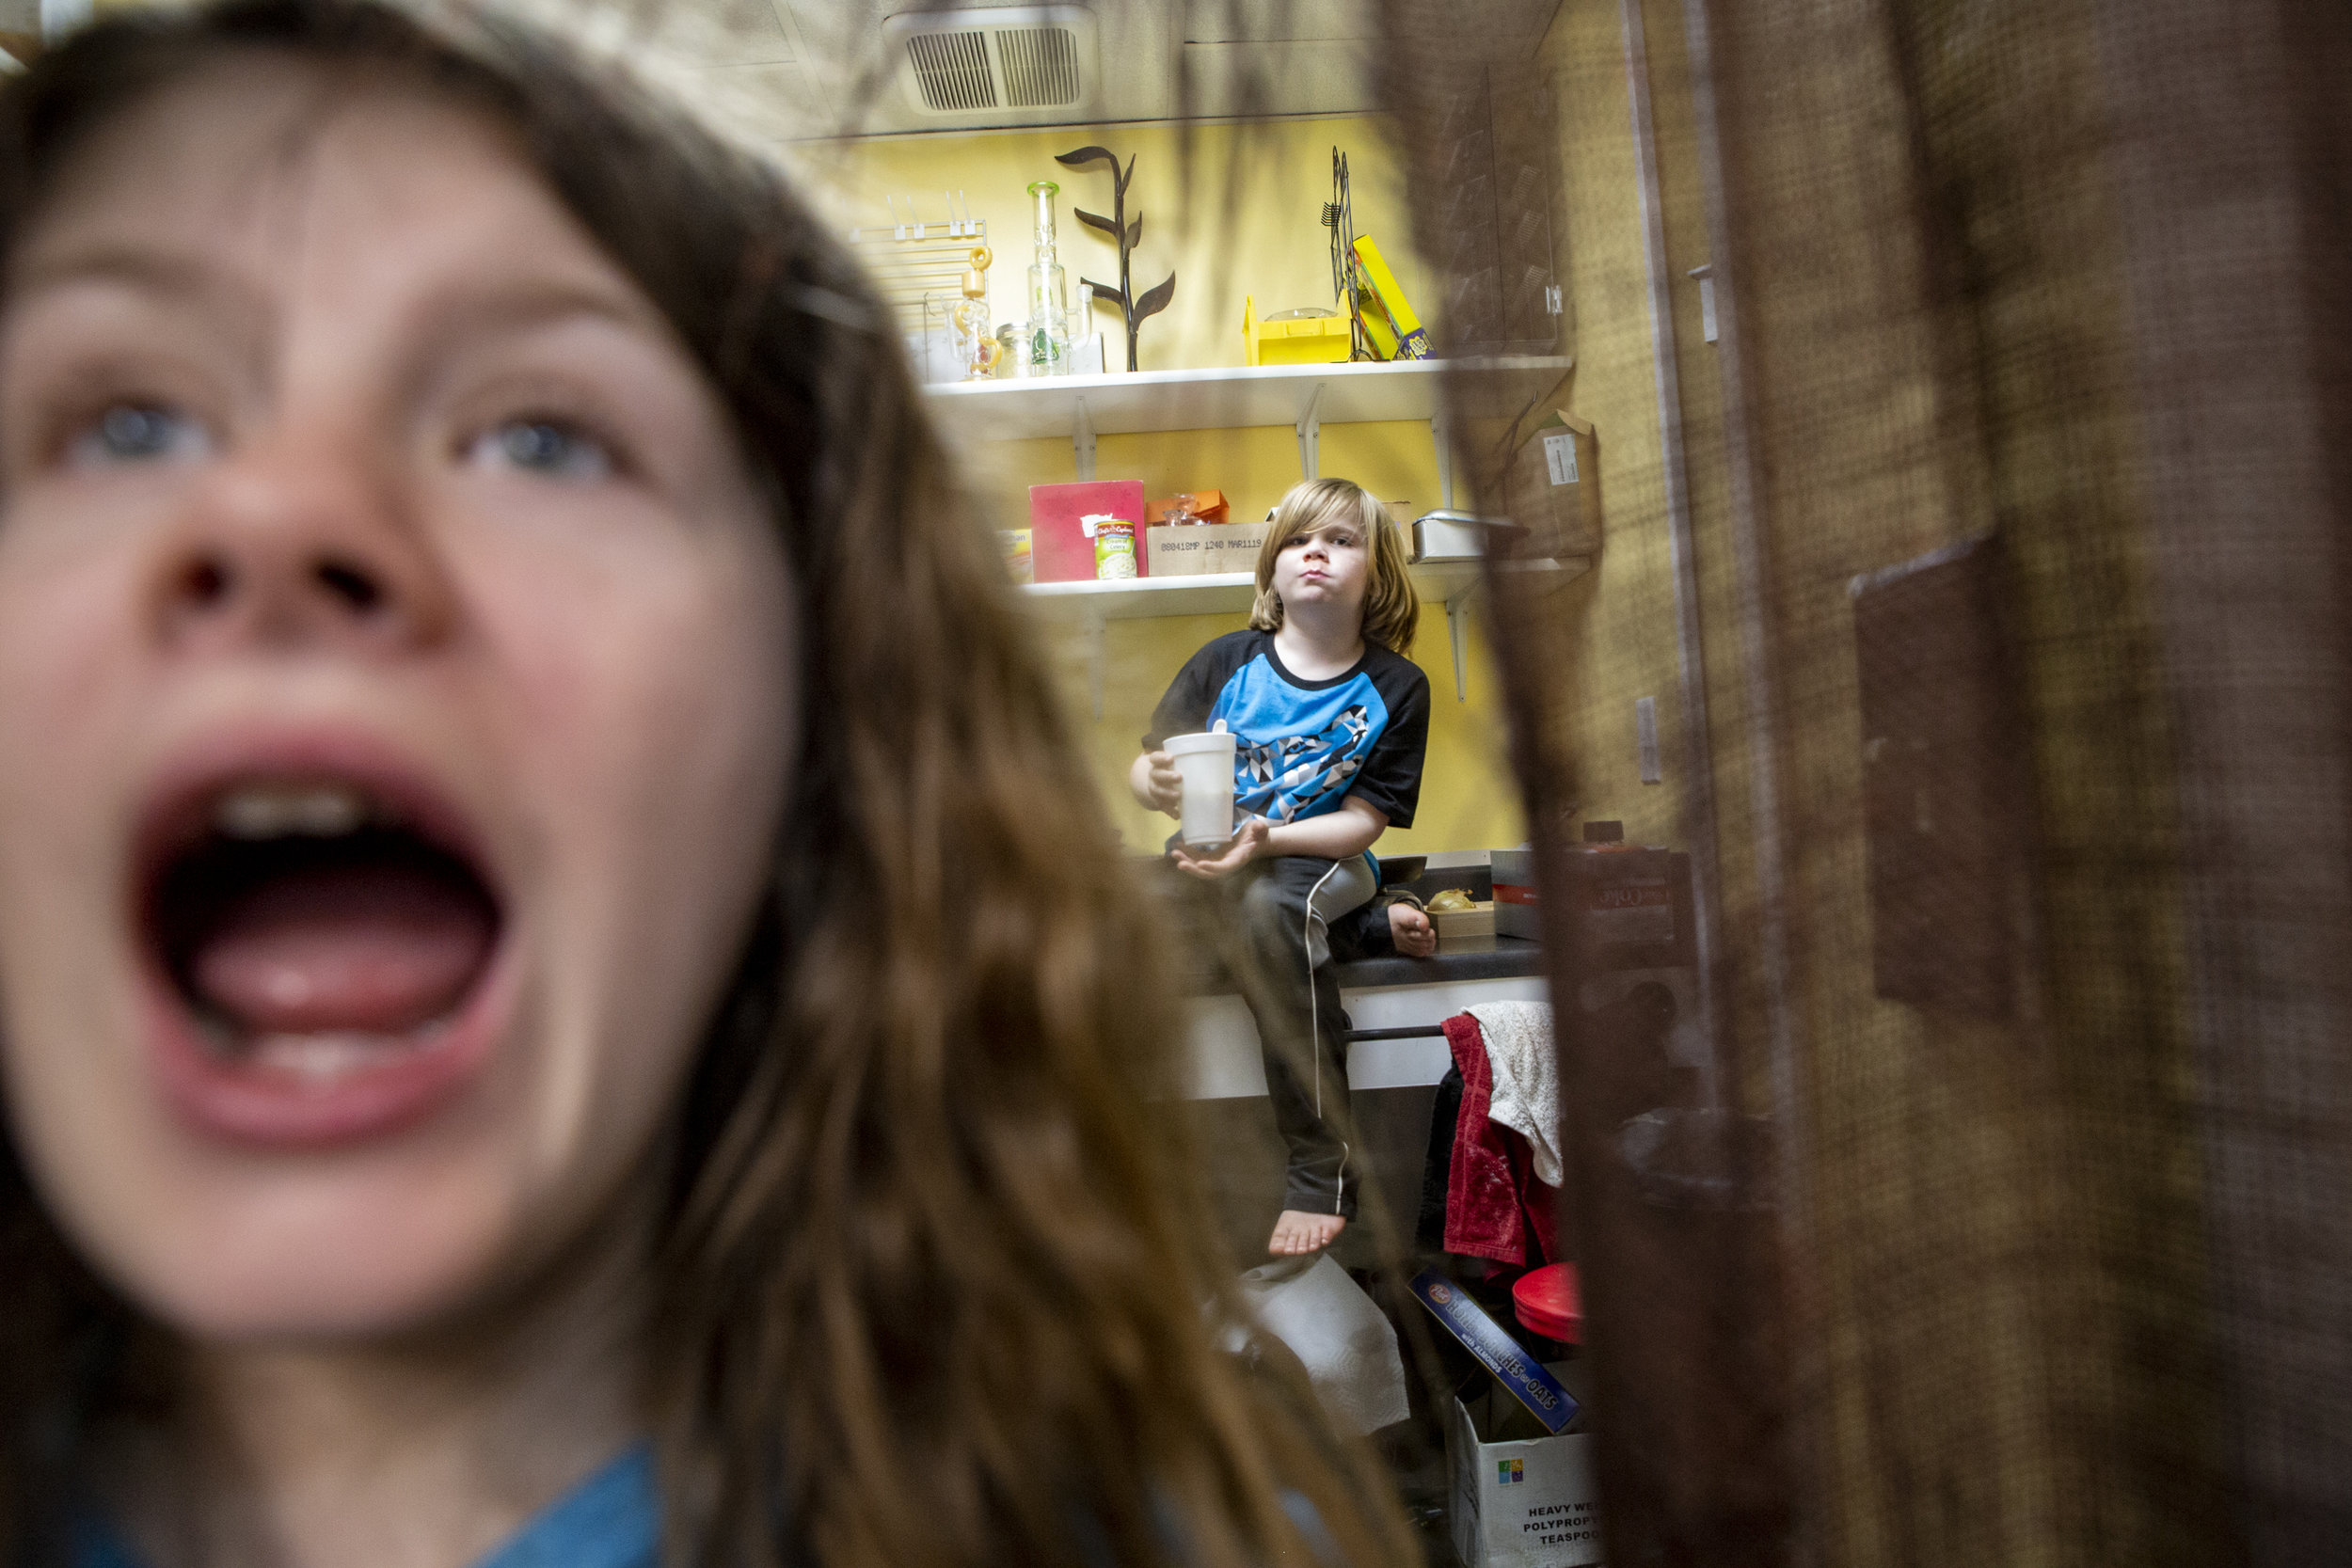 """Siblings Lizzy, 10, and Adam Gilchrist, 6, get ready for school in the back kitchen of Gilchrist Convenient Store every morning. """"They were raised here,"""" said their father Alan Gilchrist, who also grew up playing and working in the family store."""